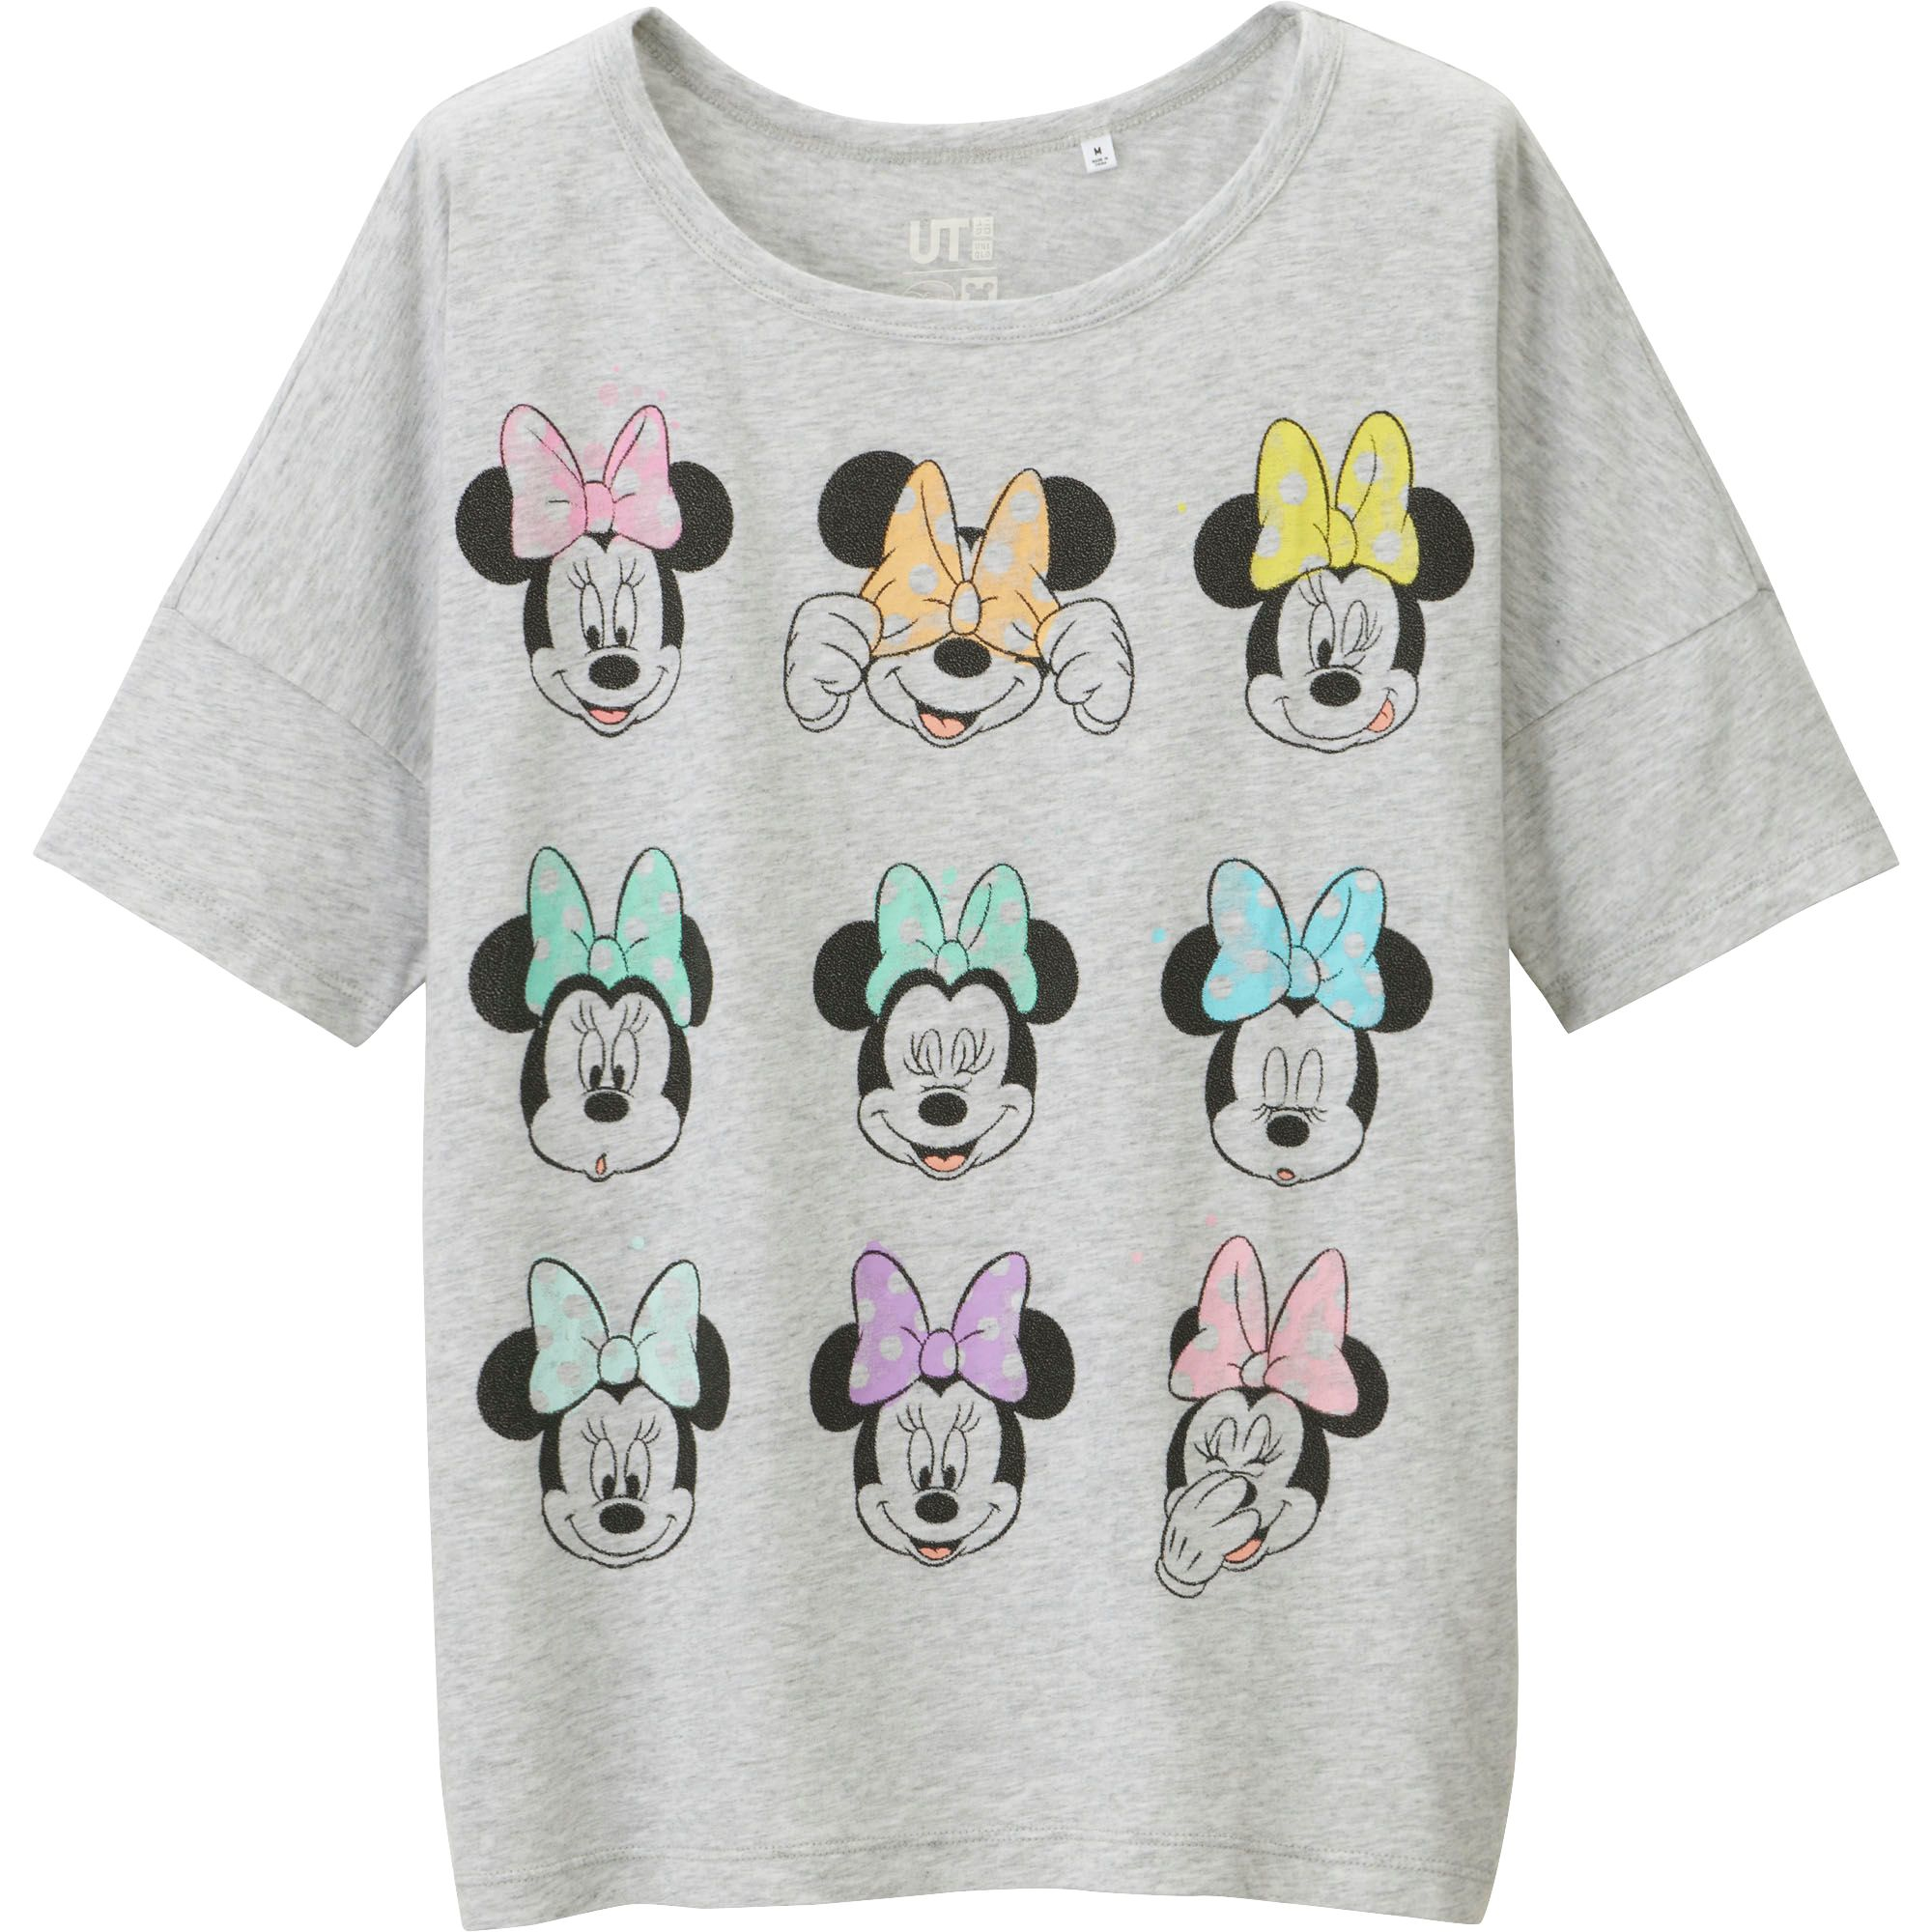 ccf08a99b Lyst - Uniqlo Women Disney Project Short Sleeve Graphic T-shirt in Gray